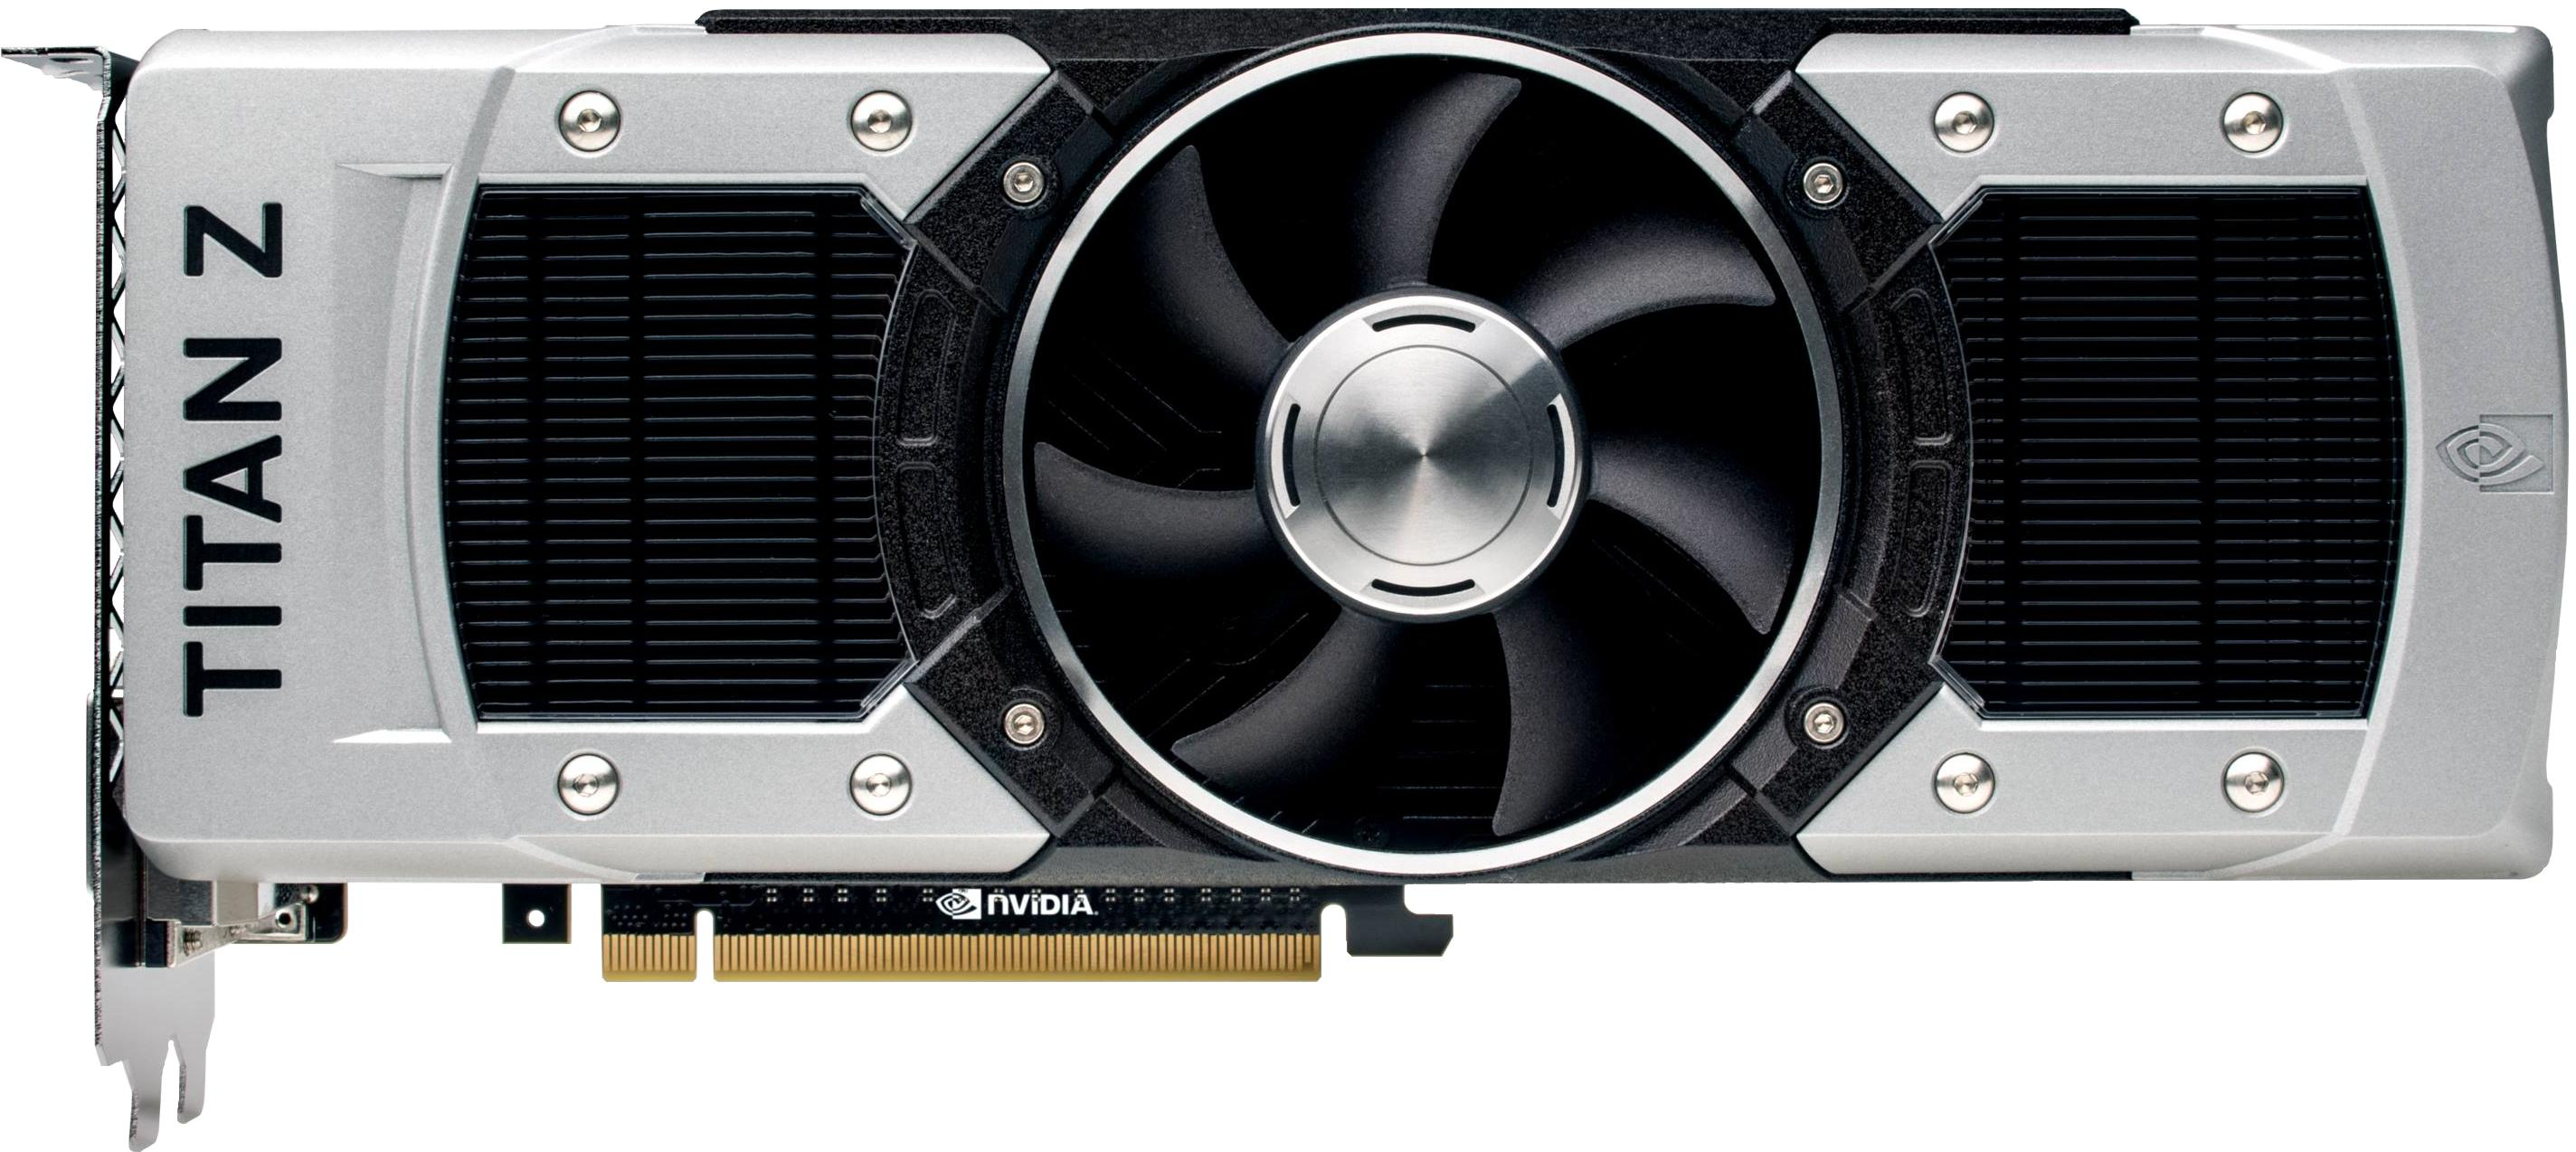 EVGA GeForce GTX Titan Z